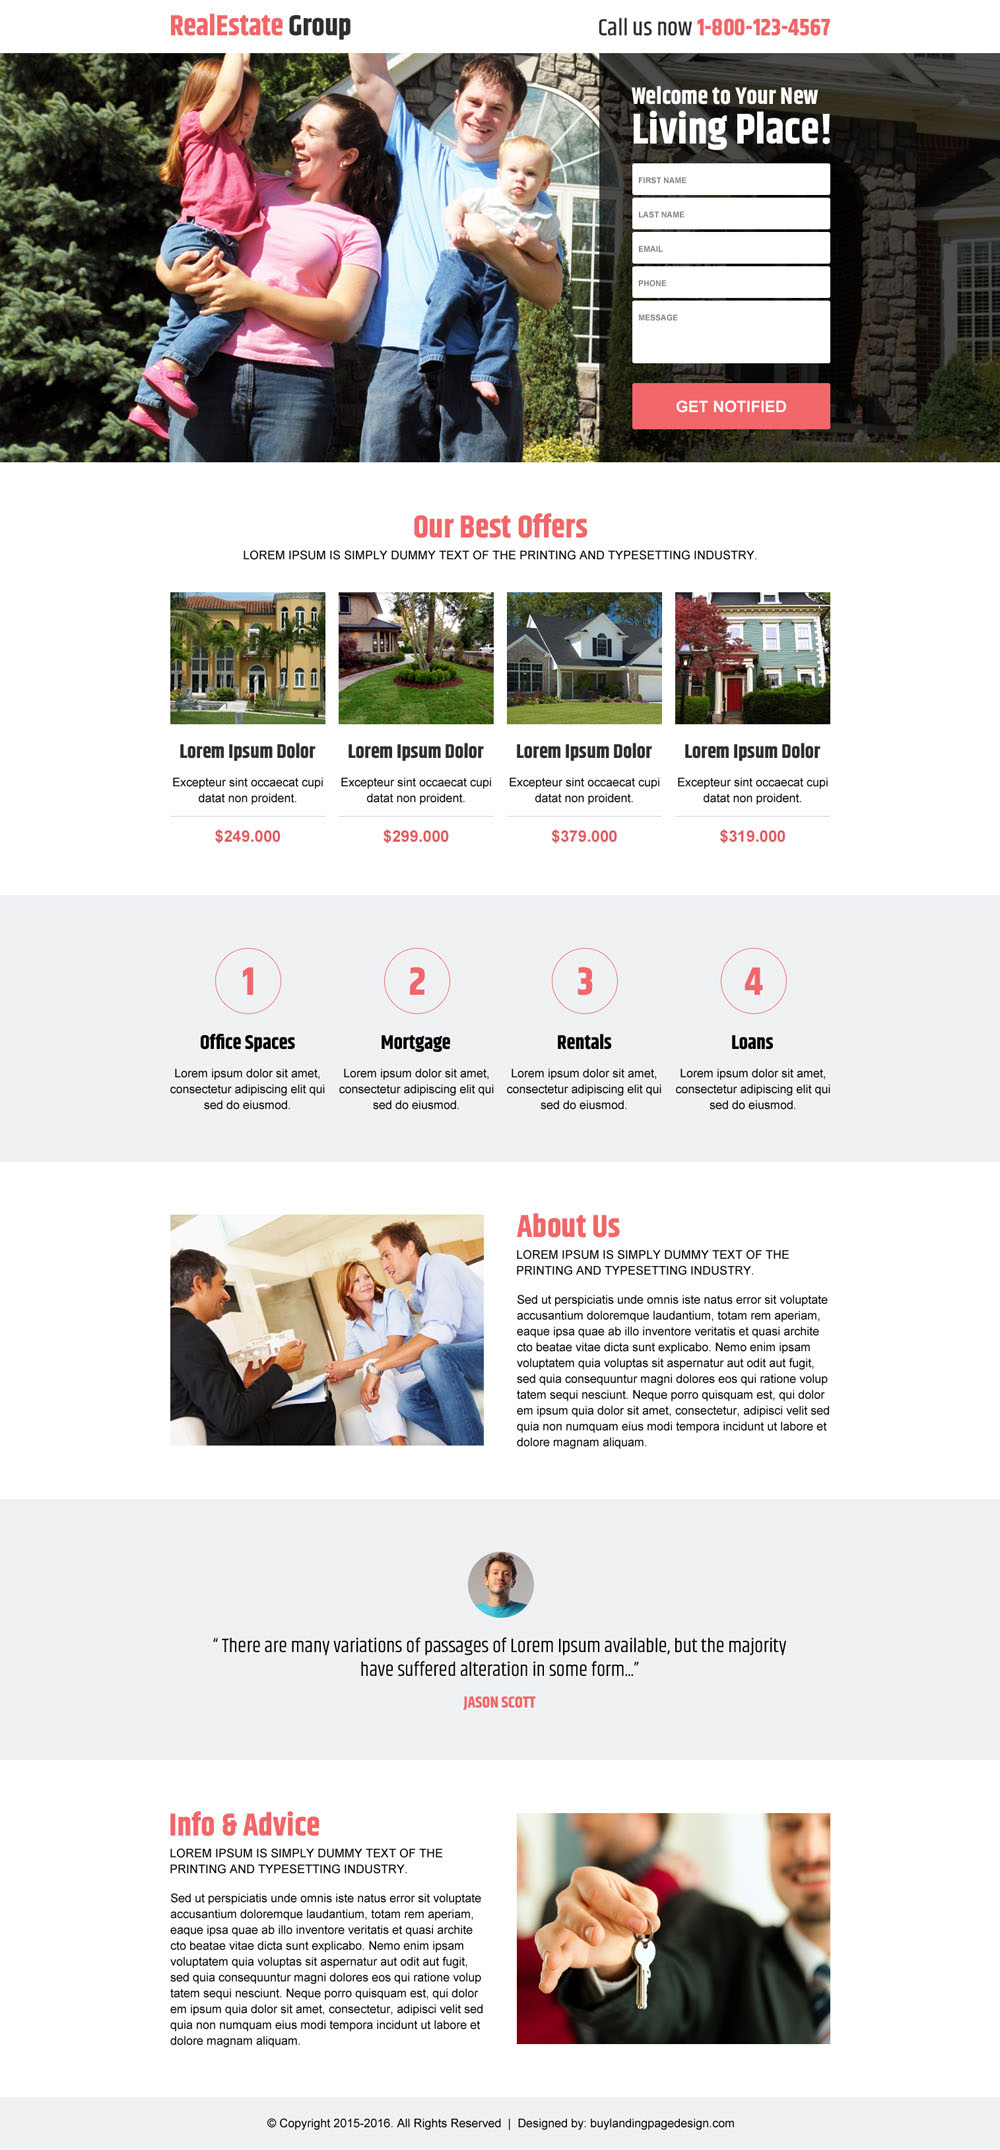 real-estate-group-best-deal-lead-generation-landing-page-design-015